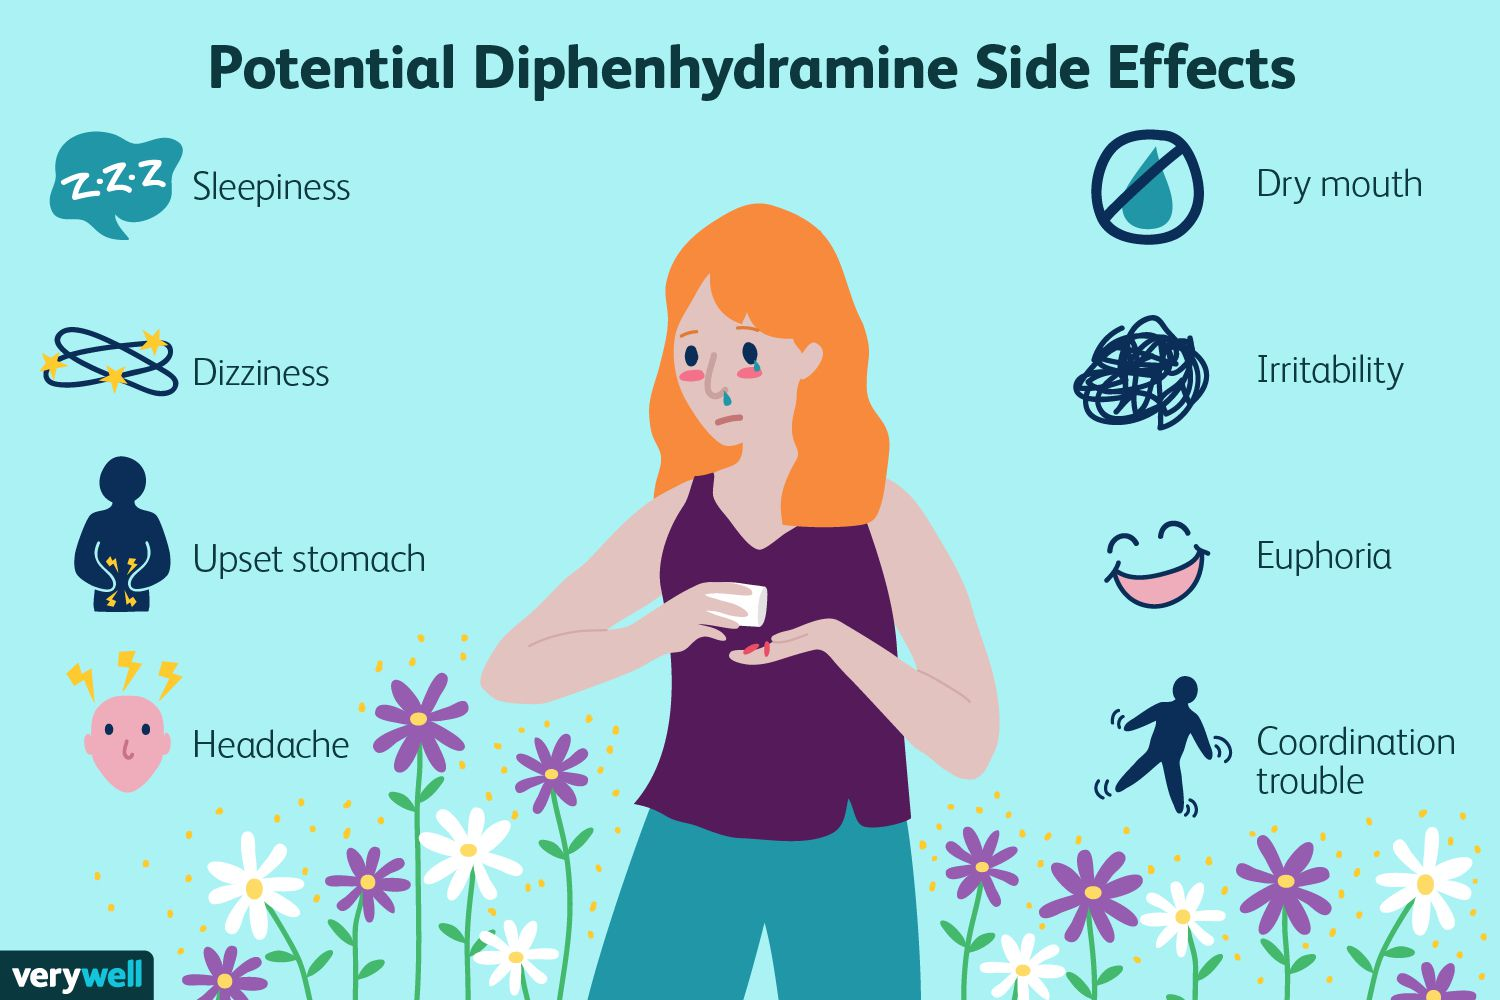 Potential Diphenhydramine Side Effects